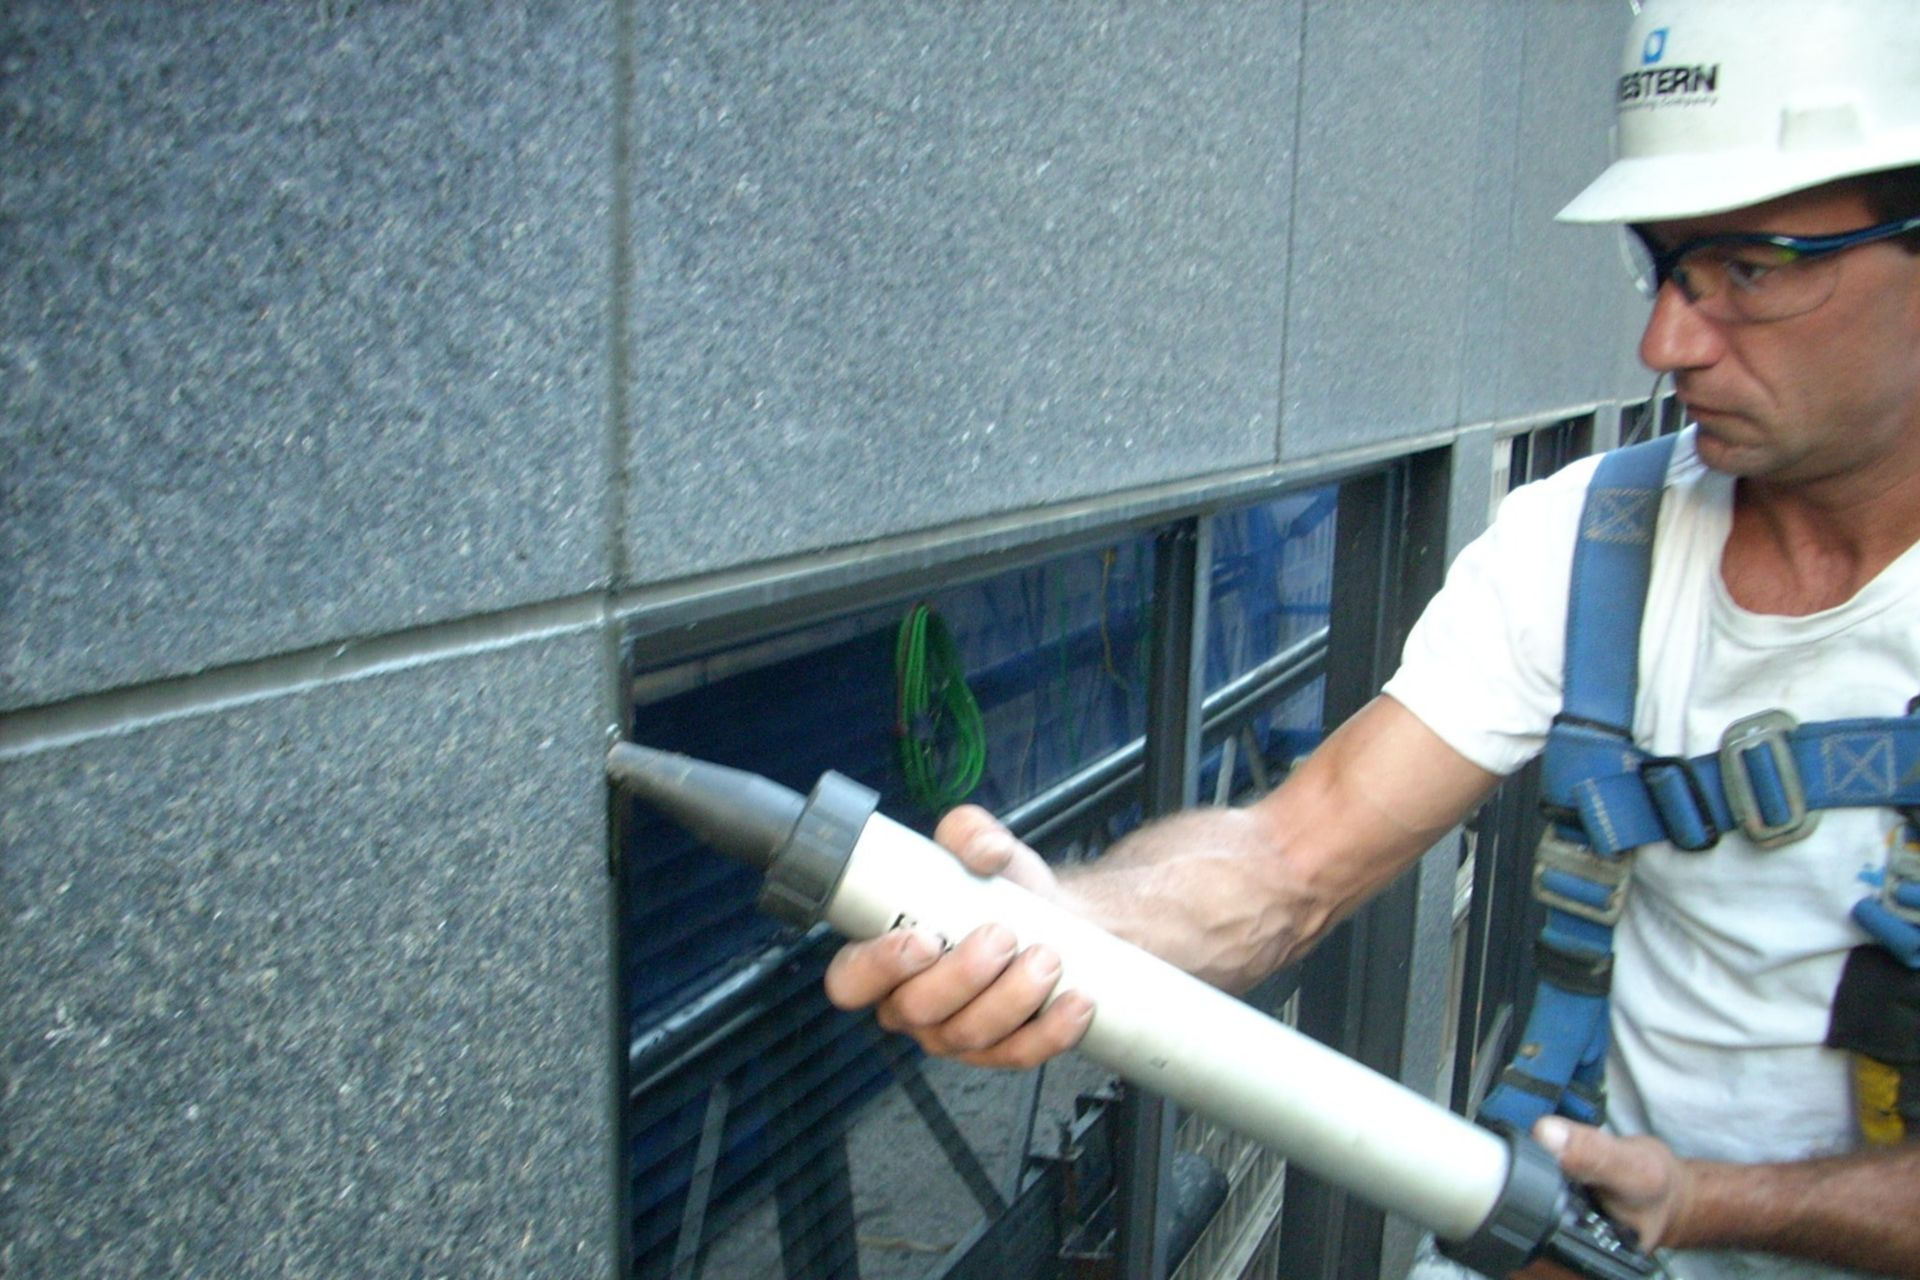 Application of Silicone Sealant